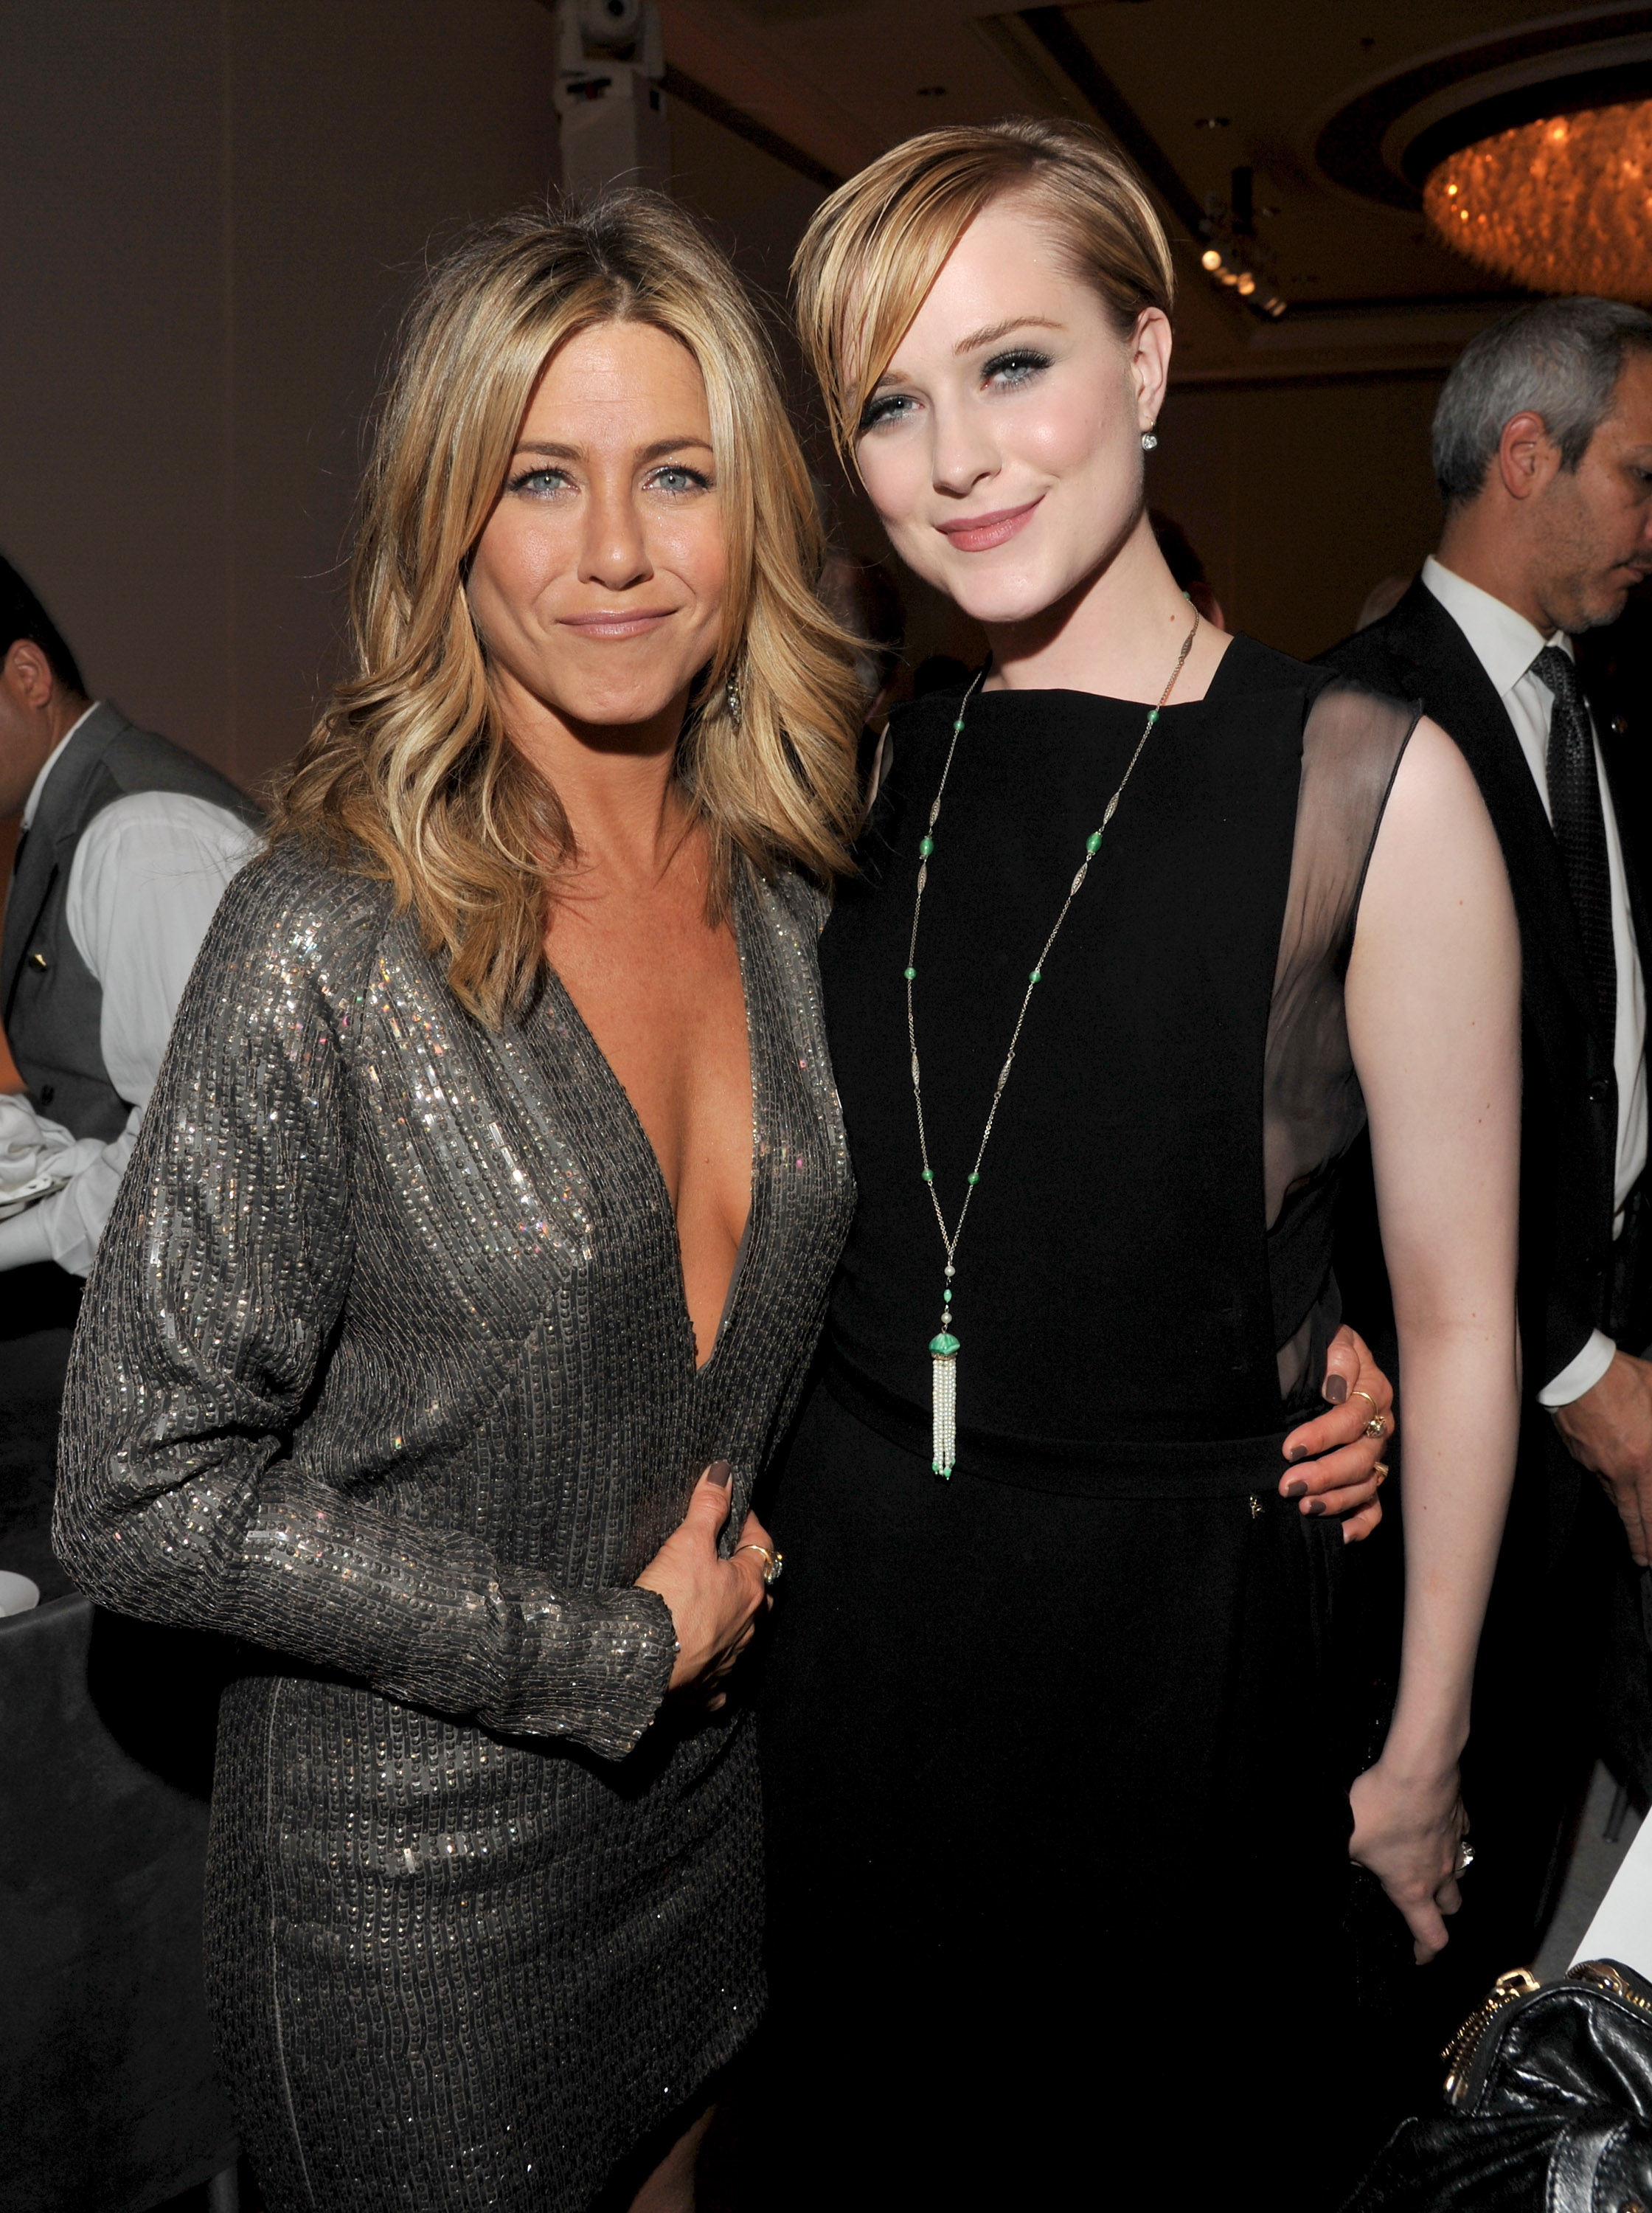 Jennifer Aniston and Evan Rachel Wood were honored at an event in LA.